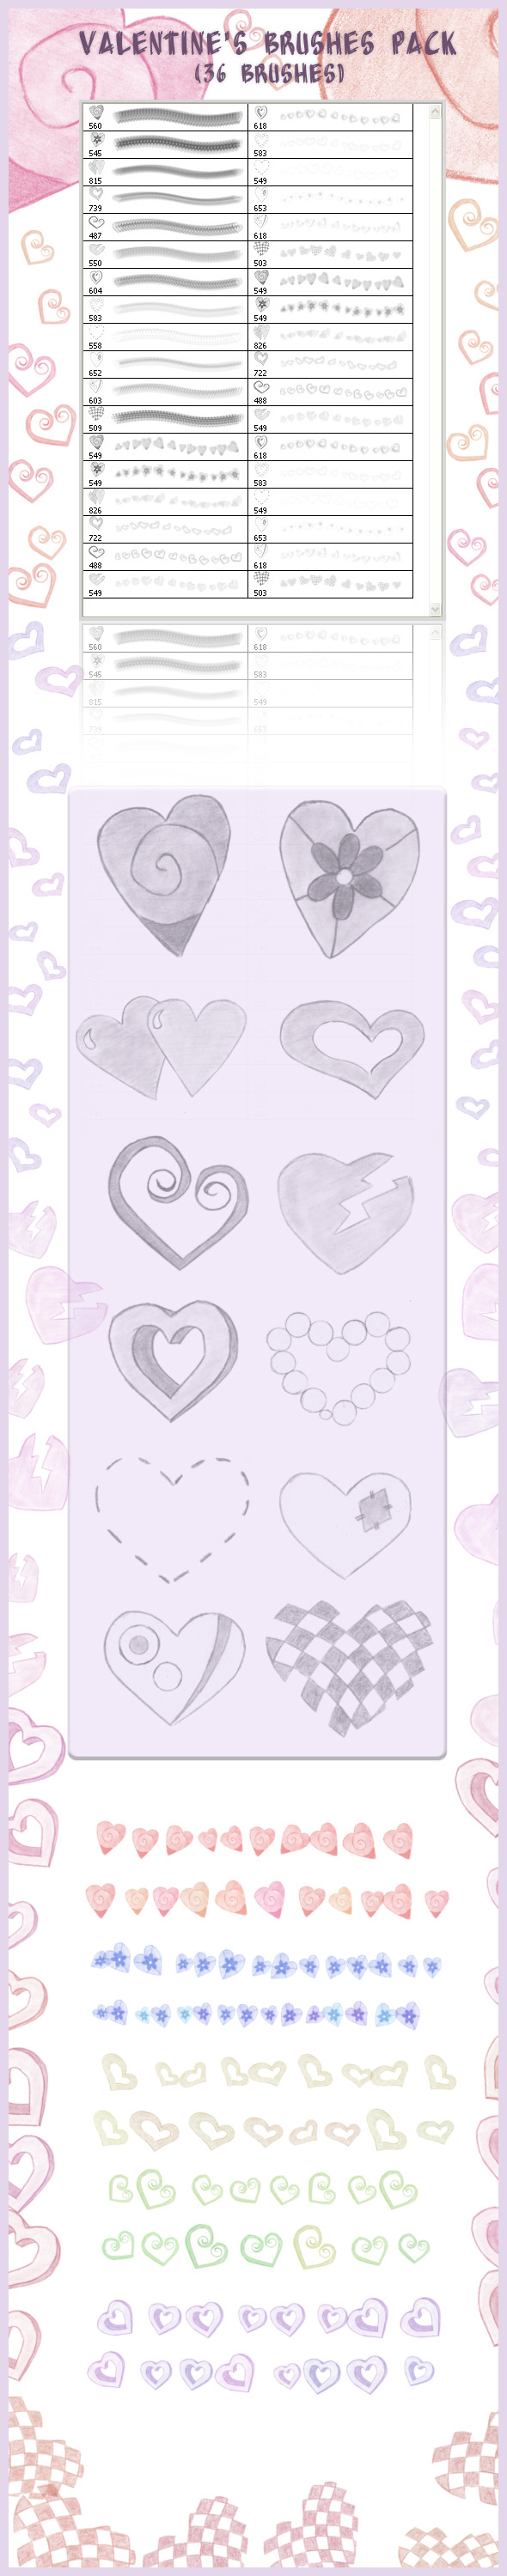 Valentine's Brushes Pack (36 brushes)  - Flourishes Brushes